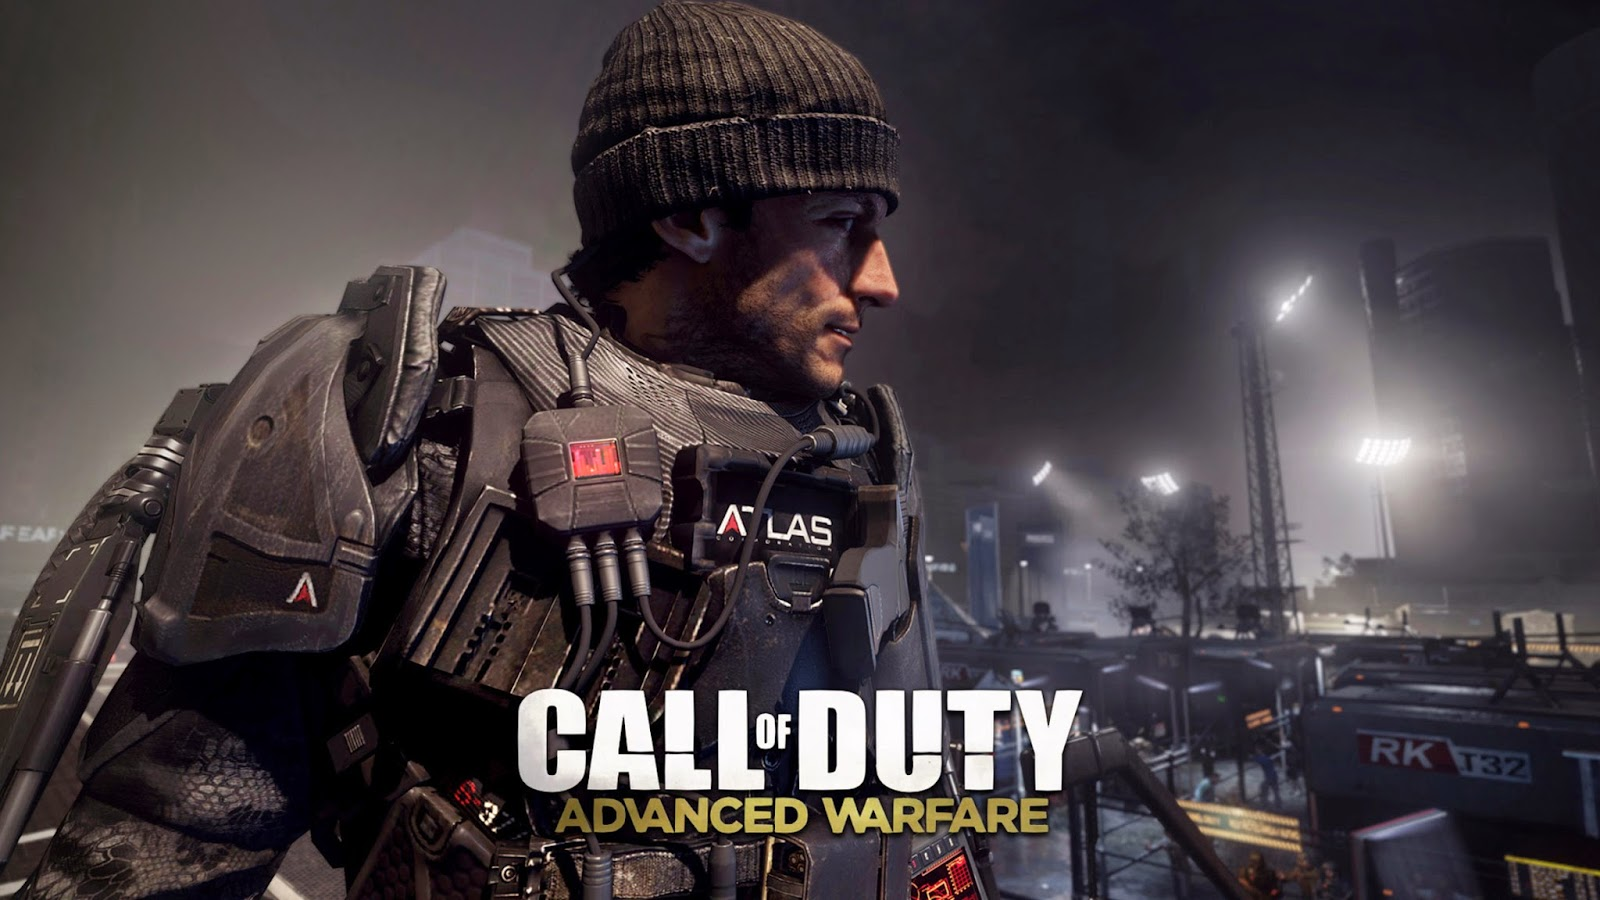 تحميل لعبه Call of Duty Advanced Warfare